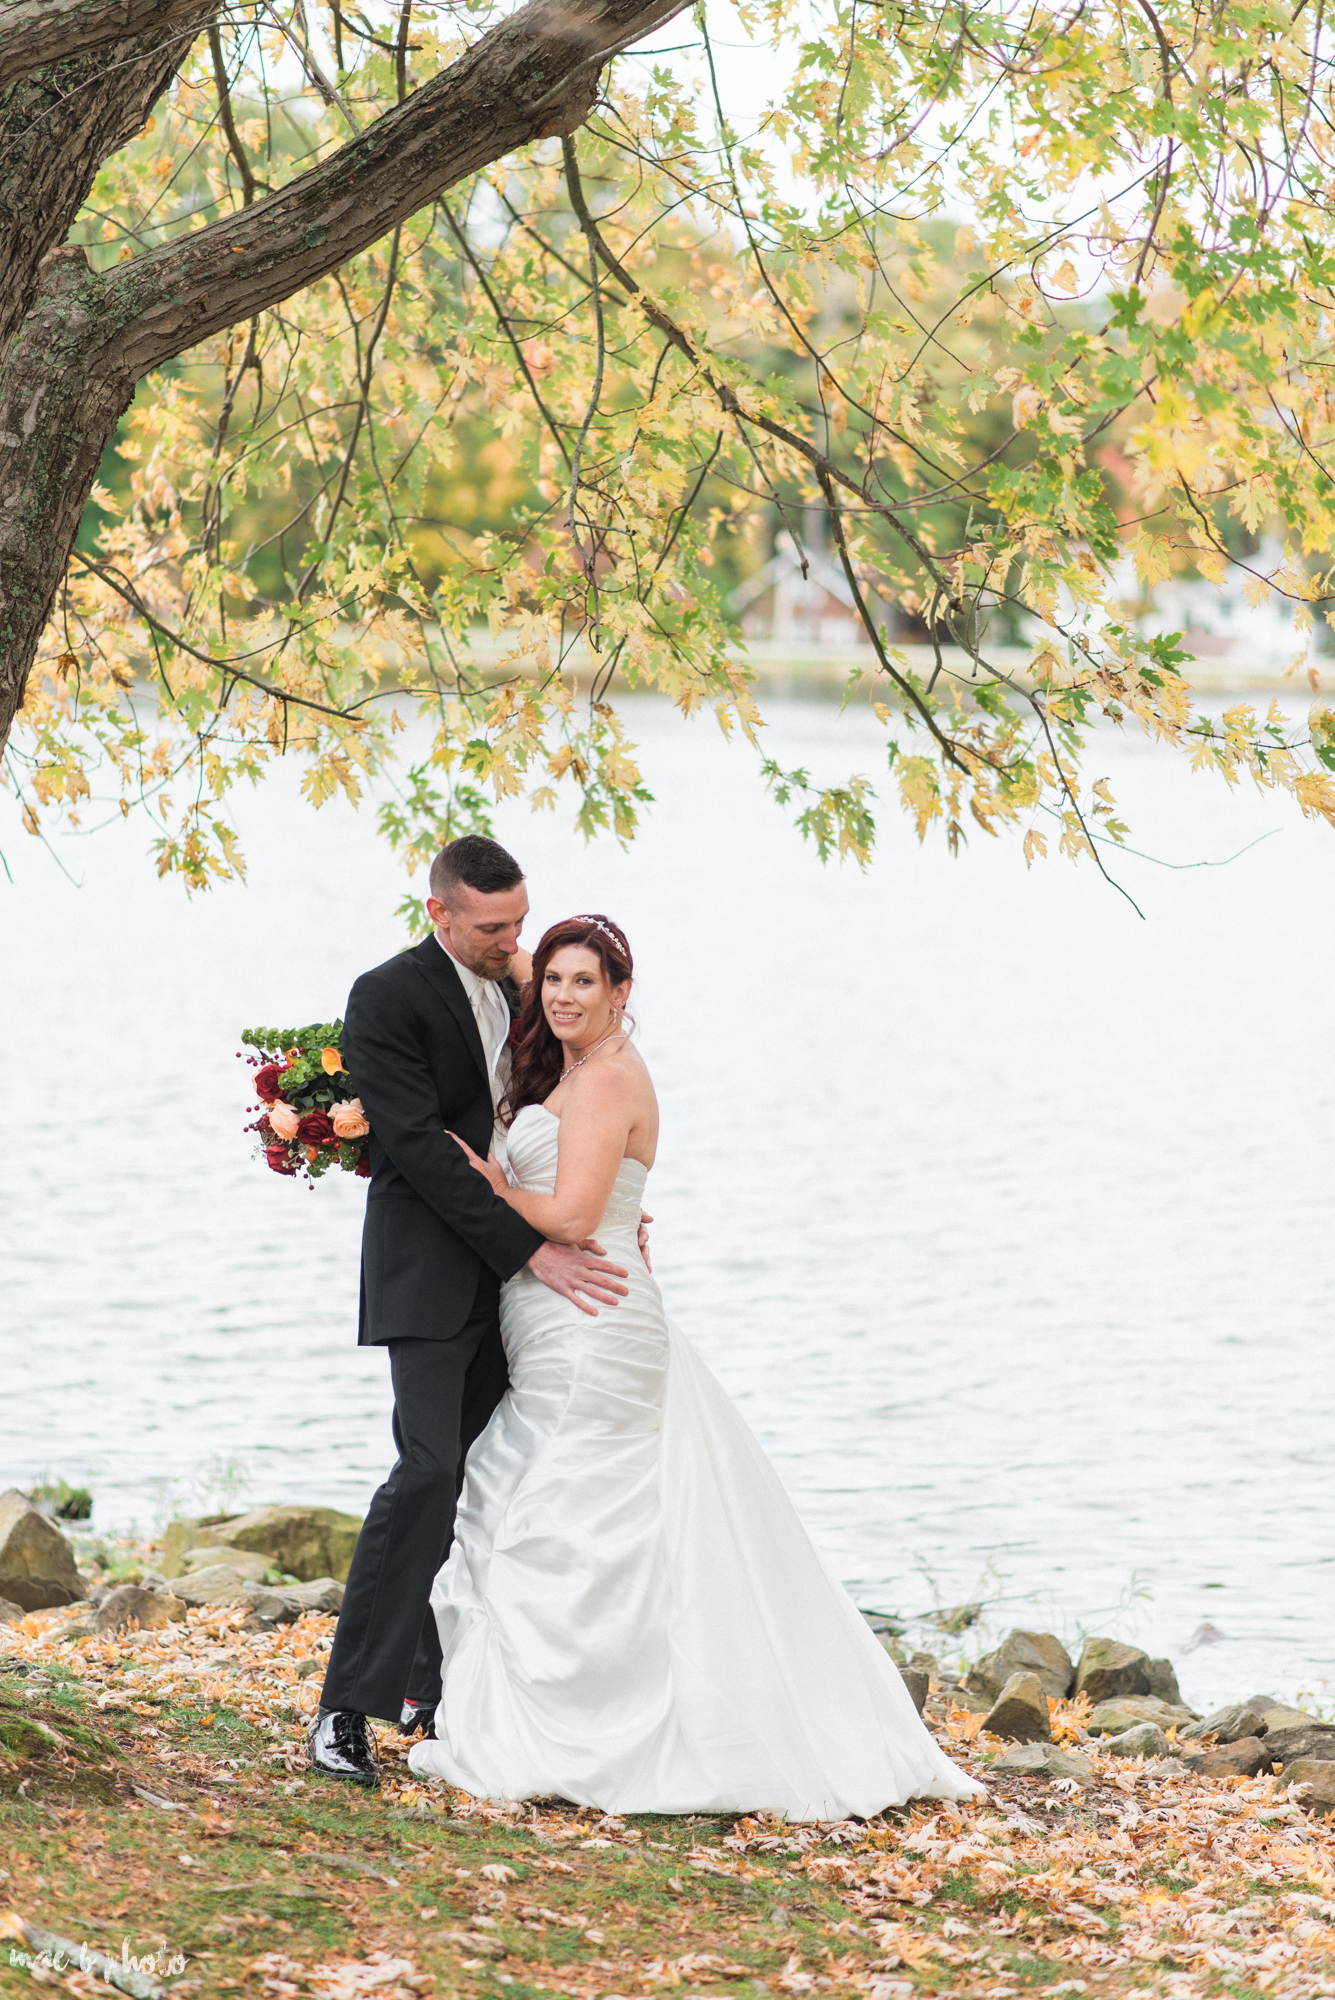 tracey and aaron's personal fall wedding at tiffany's banquet center in brookfield ohio-77.jpg